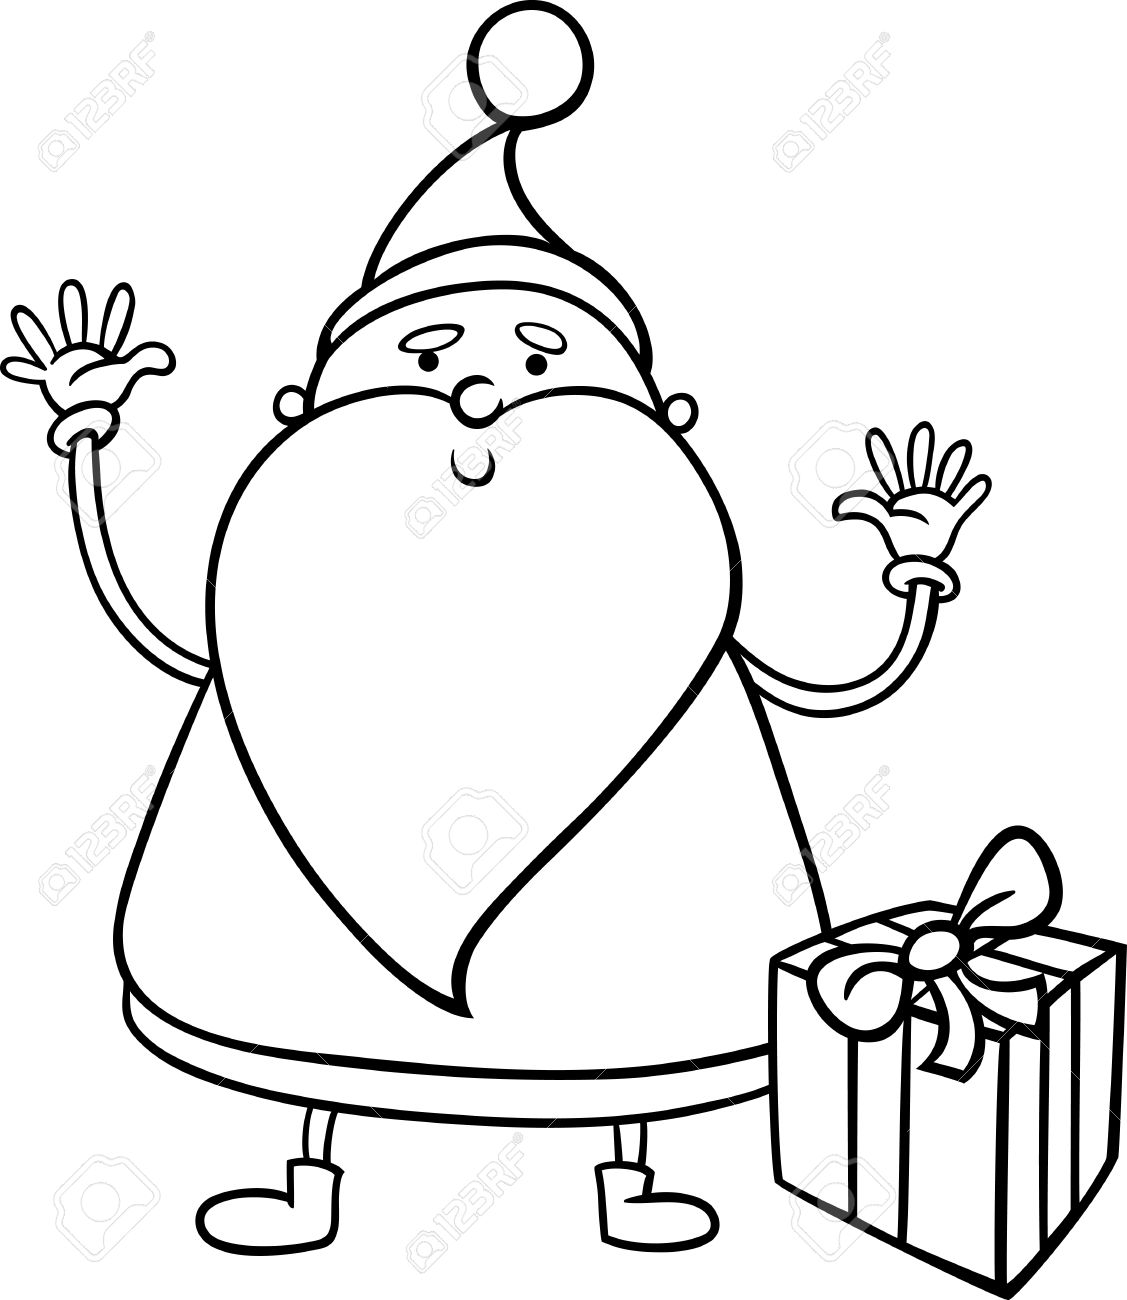 1127x1300 Black And White Cartoon Illustration Of Cute Santa Claus Christmas